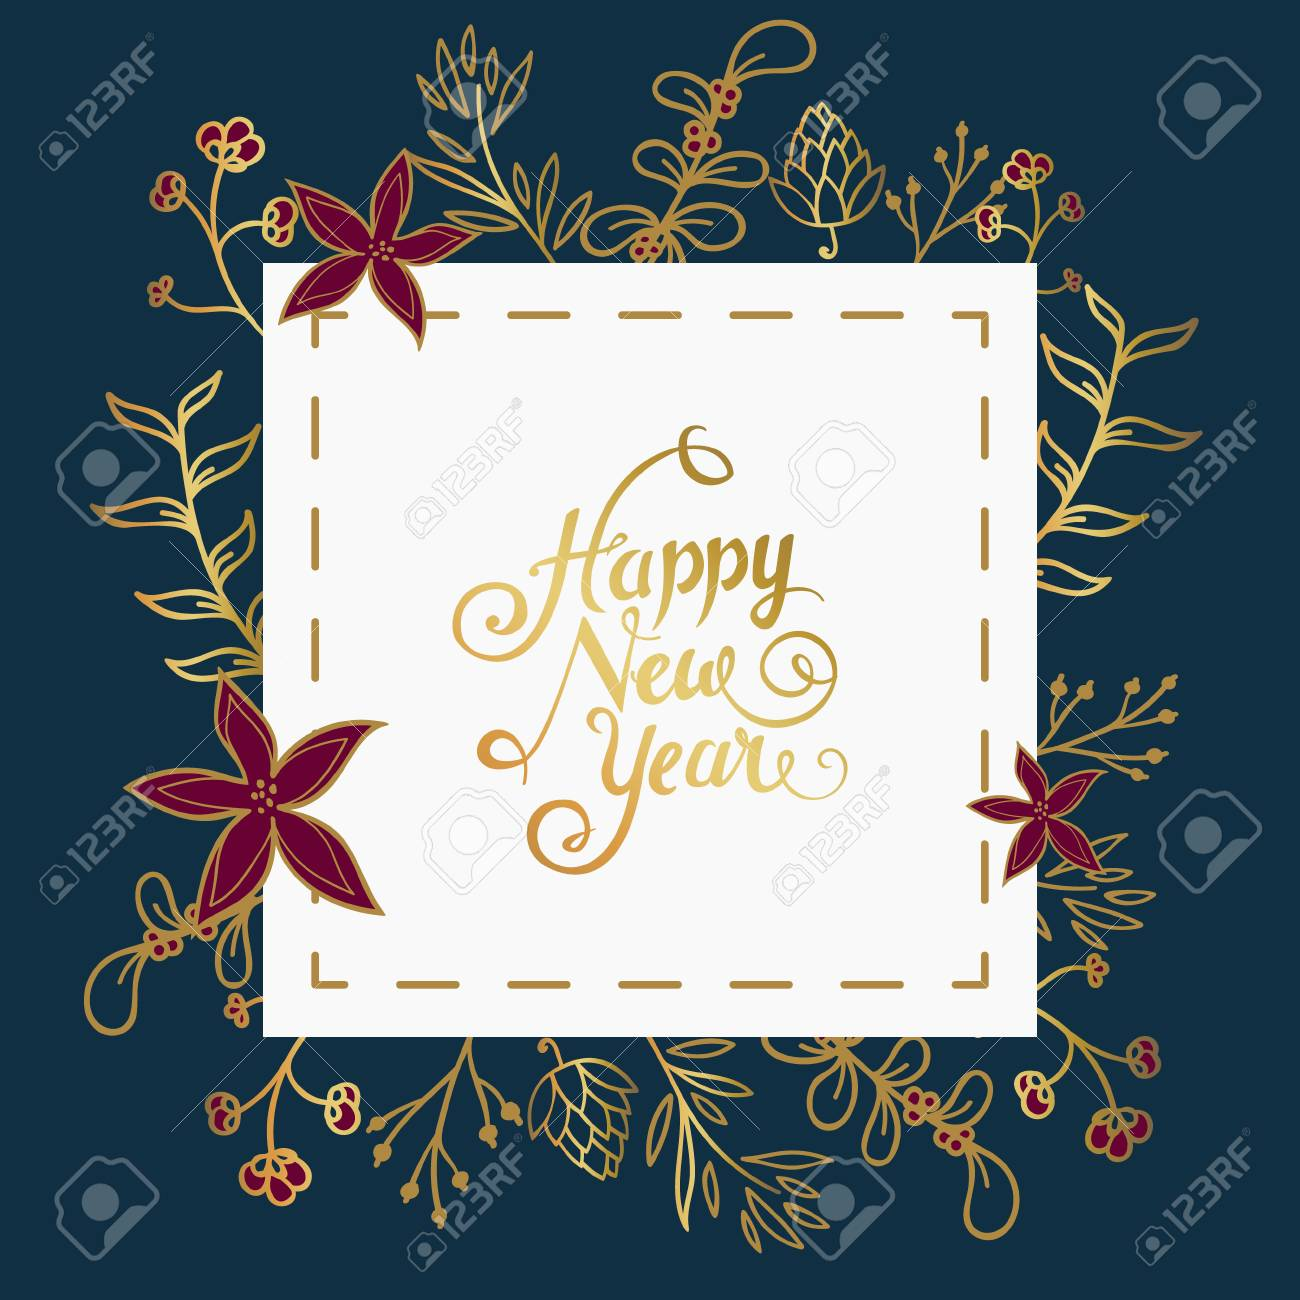 New Year Wishes In White Square Over Dark Blue Background With ...